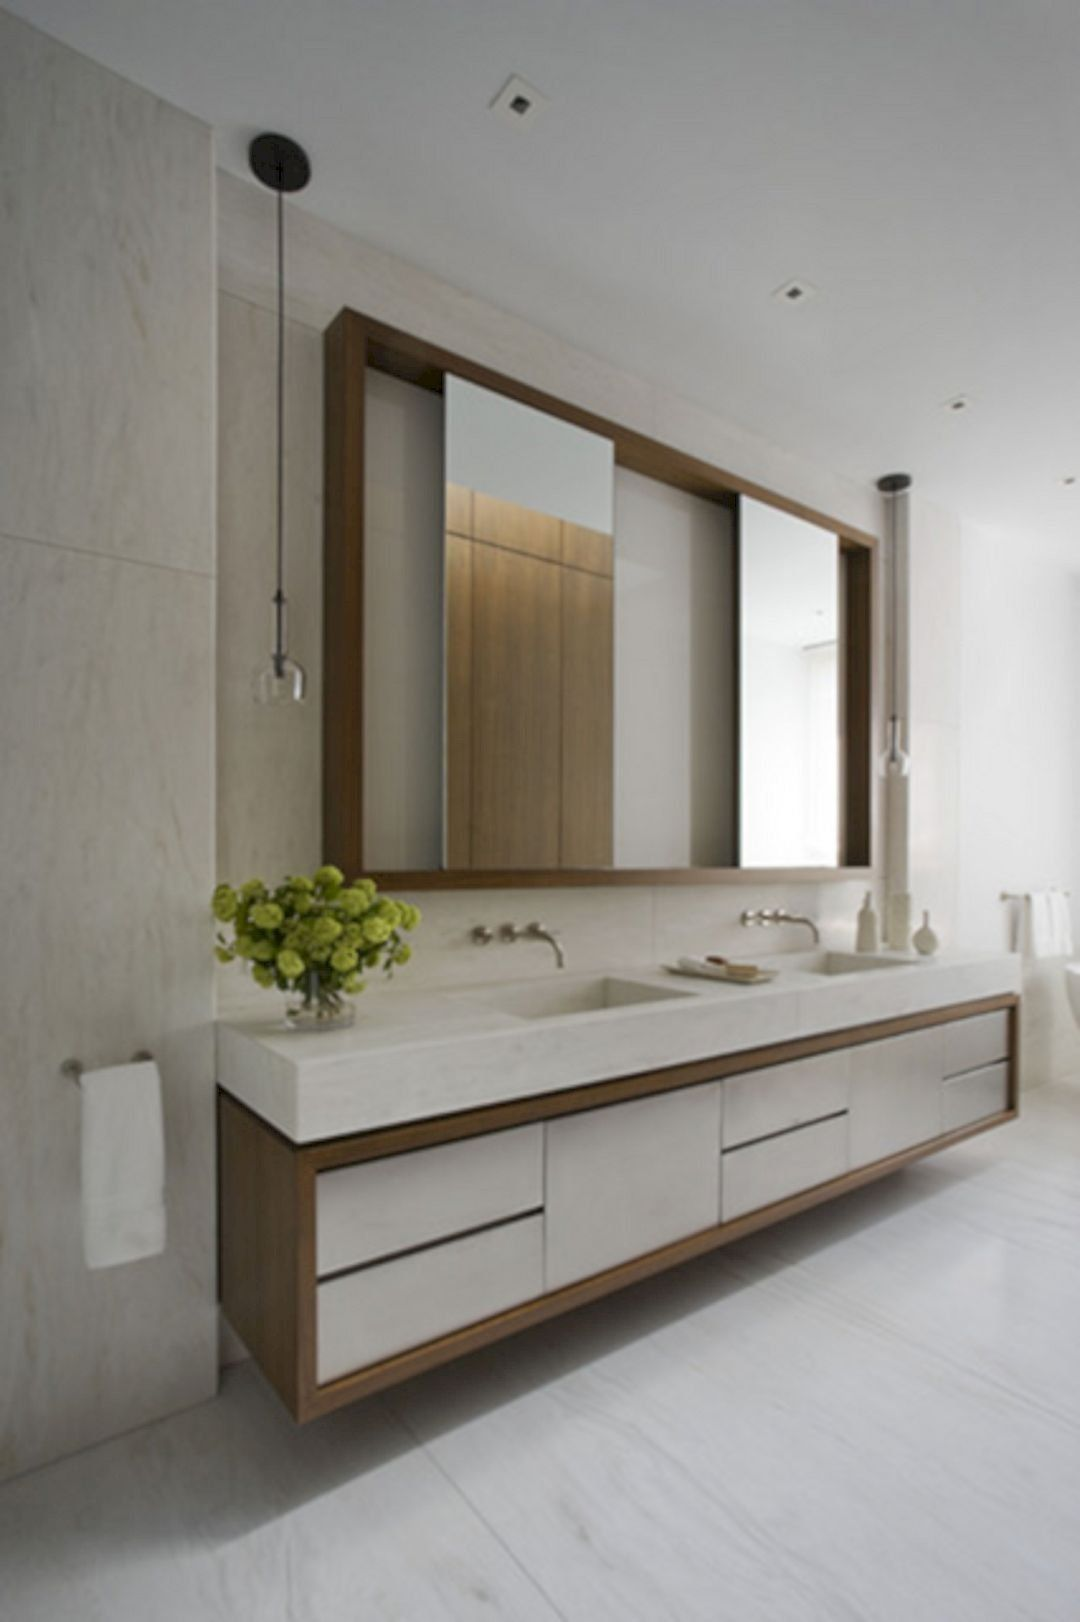 Stylish Modern Bathroom: 128 Best Designs Roundup | Gorgeous ... on carpet design, refrigerator cabinetry design, kitchens design, bathroom wood, bathroom architecture, painting design, office cabinetry design, bathroom mouldings, design design, hardwood design, bathroom hutches, bathroom cabinetry collections, laundry room cabinetry design, bathroom art deco, family room cabinetry design, bar cabinetry design, flooring design, bathroom electrical, bathroom finishes, custom design,